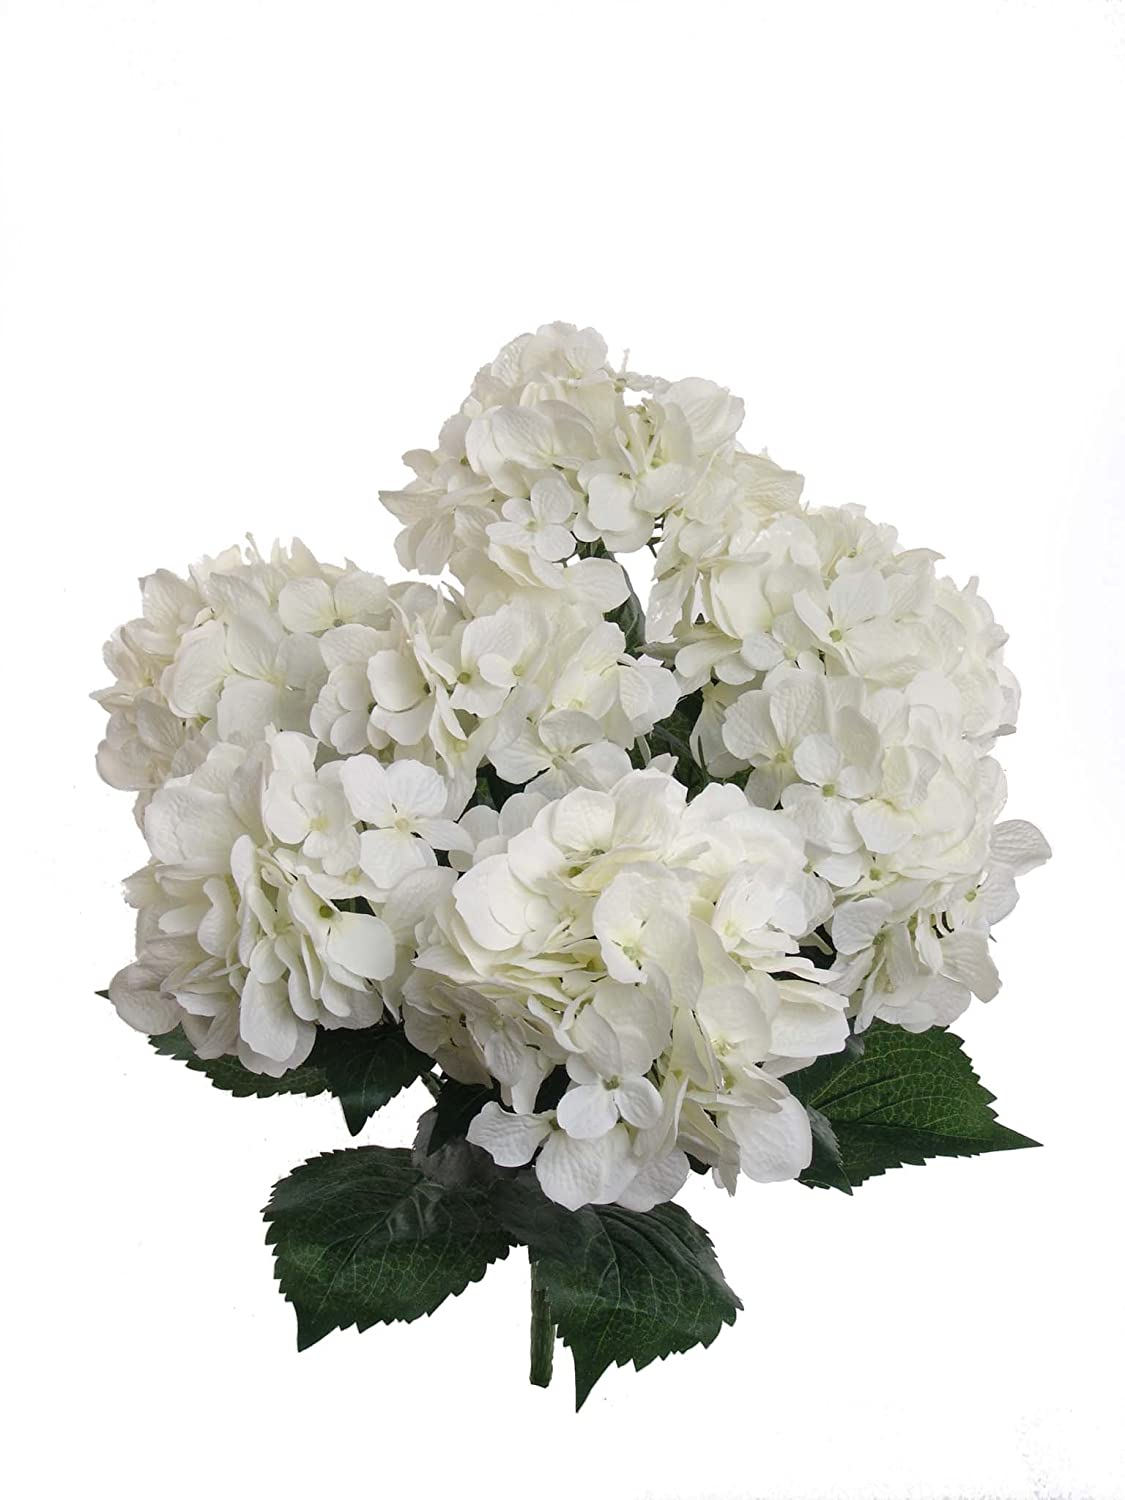 Amazon larksilk hydrangea artificial flower 22 white home amazon larksilk hydrangea artificial flower 22 white home kitchen mightylinksfo